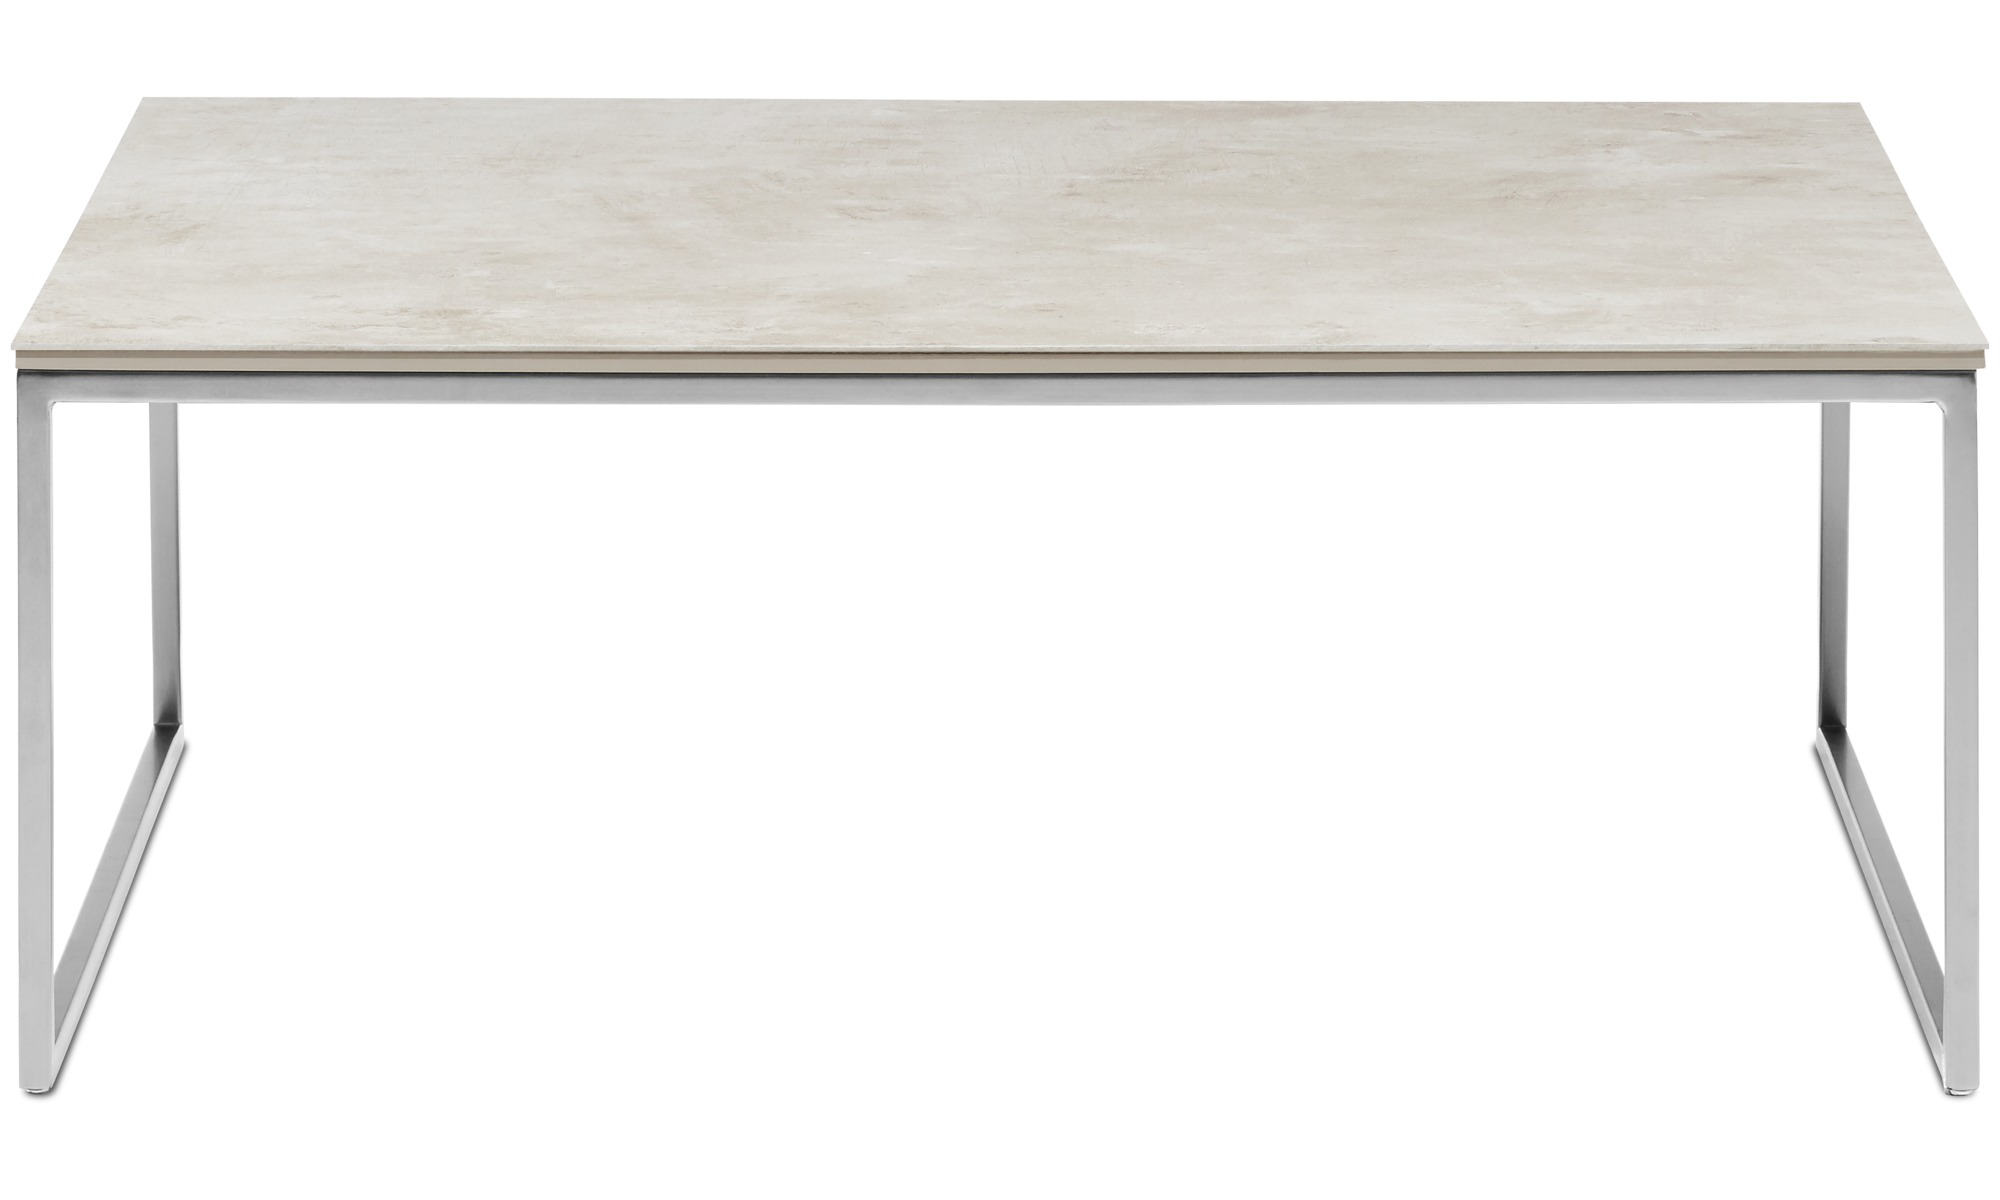 Coffee tables - Lugo coffee table - square - Gray - Ceramic ...